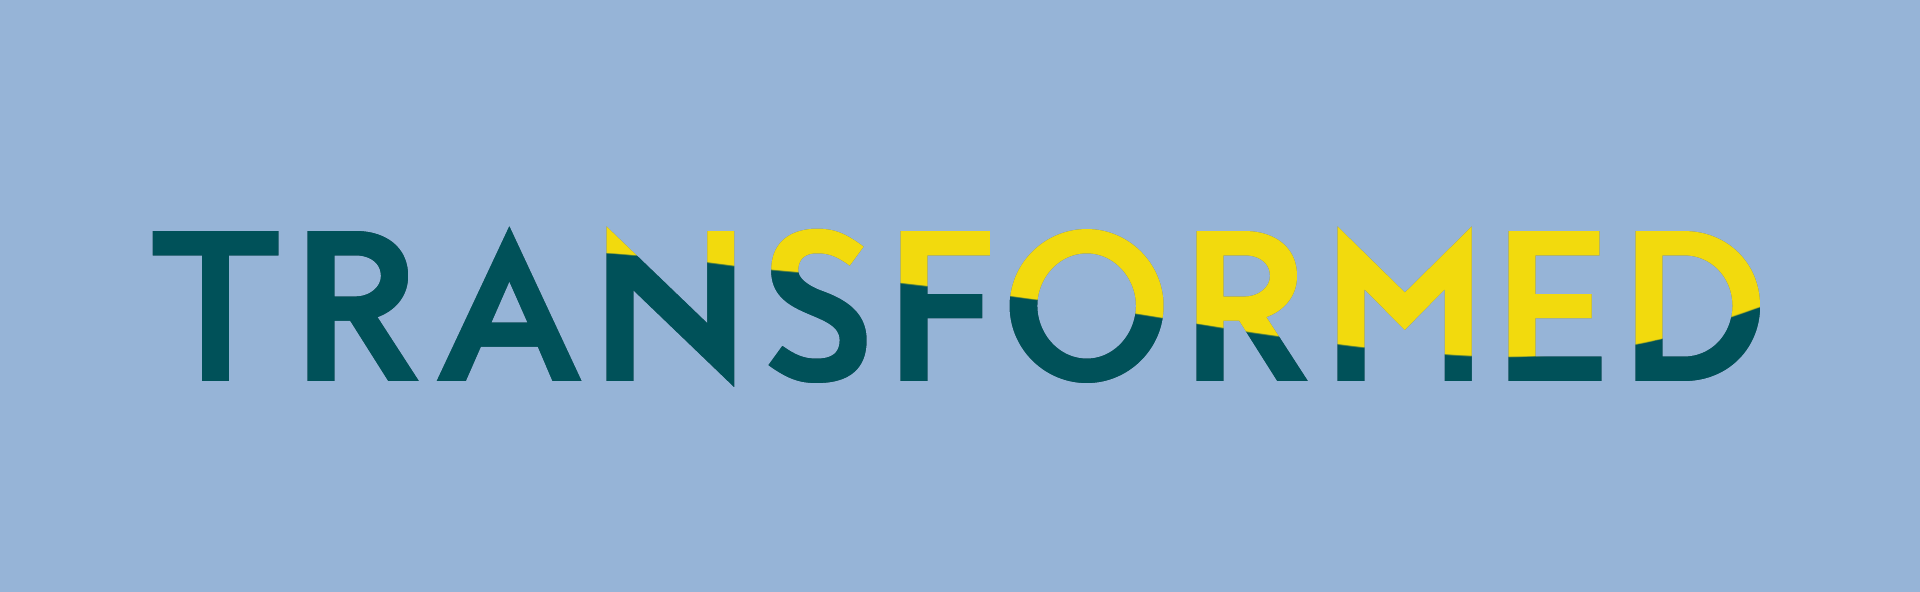 Transformed logo in blue and yellow on blue background